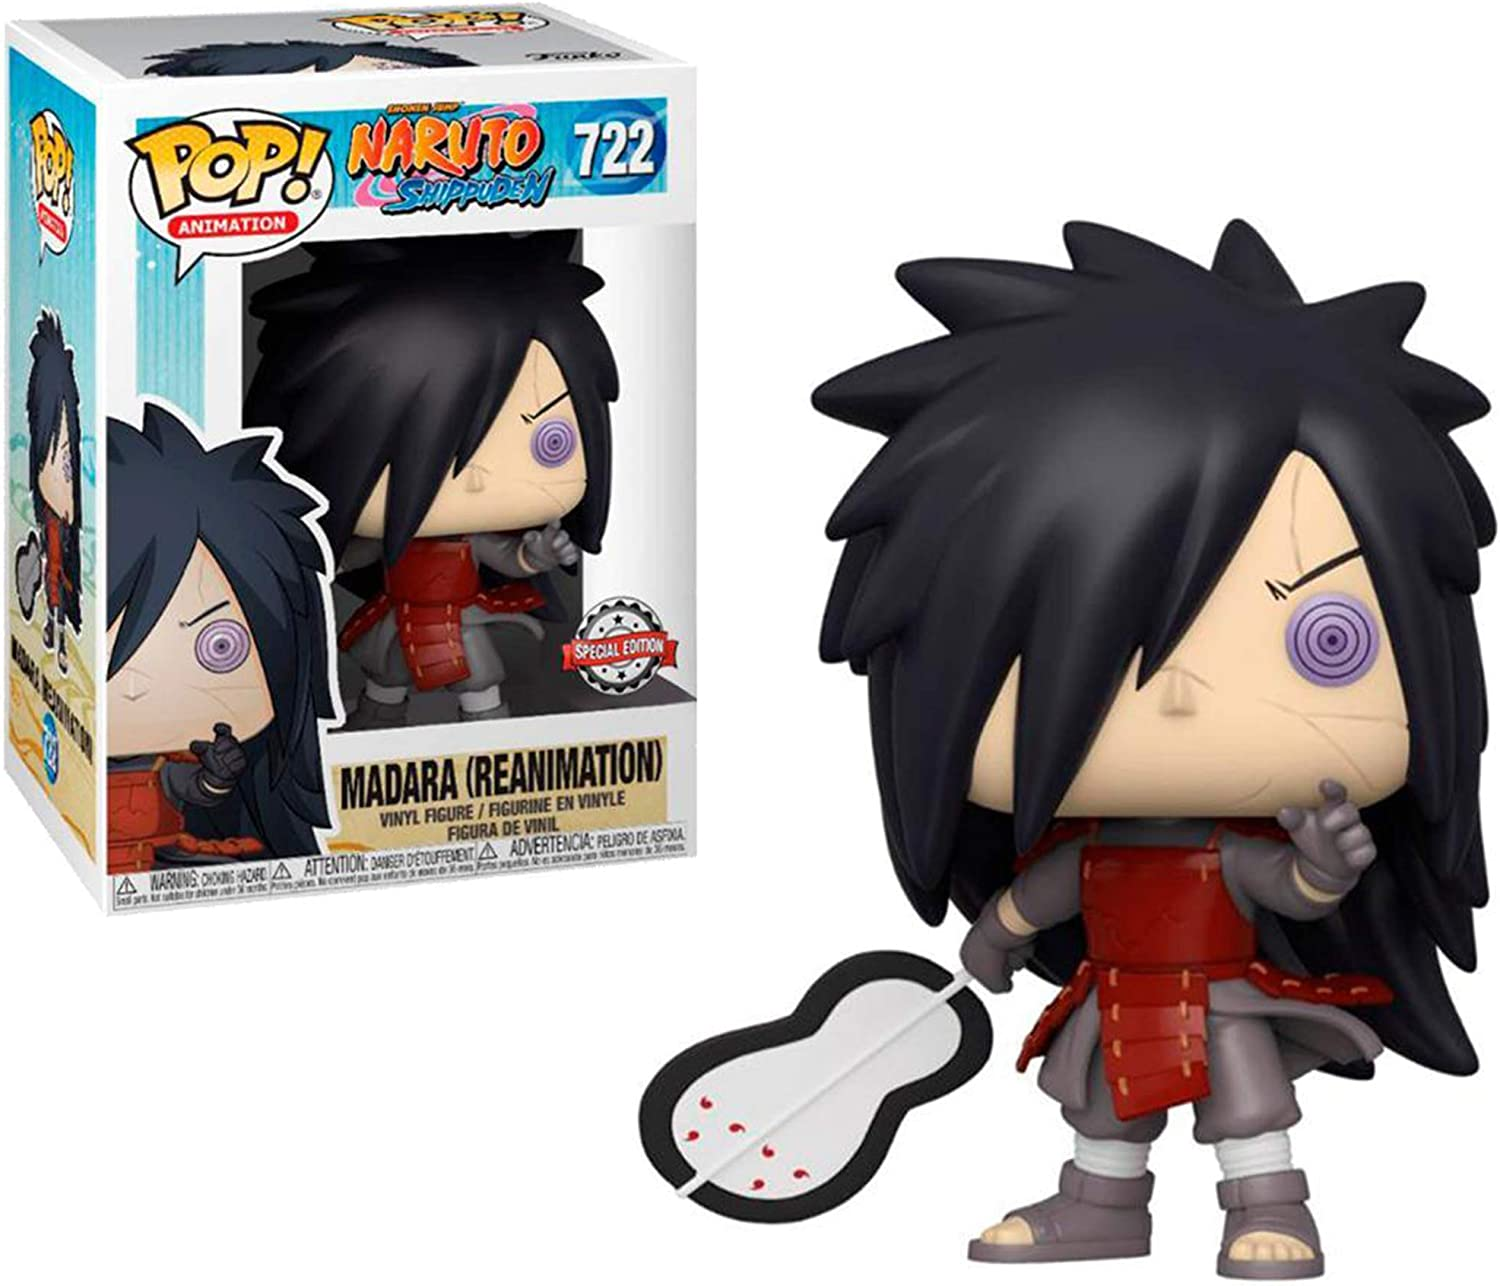 Naruto Shippuden - Popular standard Madara Reanimation Edition Special Cheap mail order specialty store Exclusiv